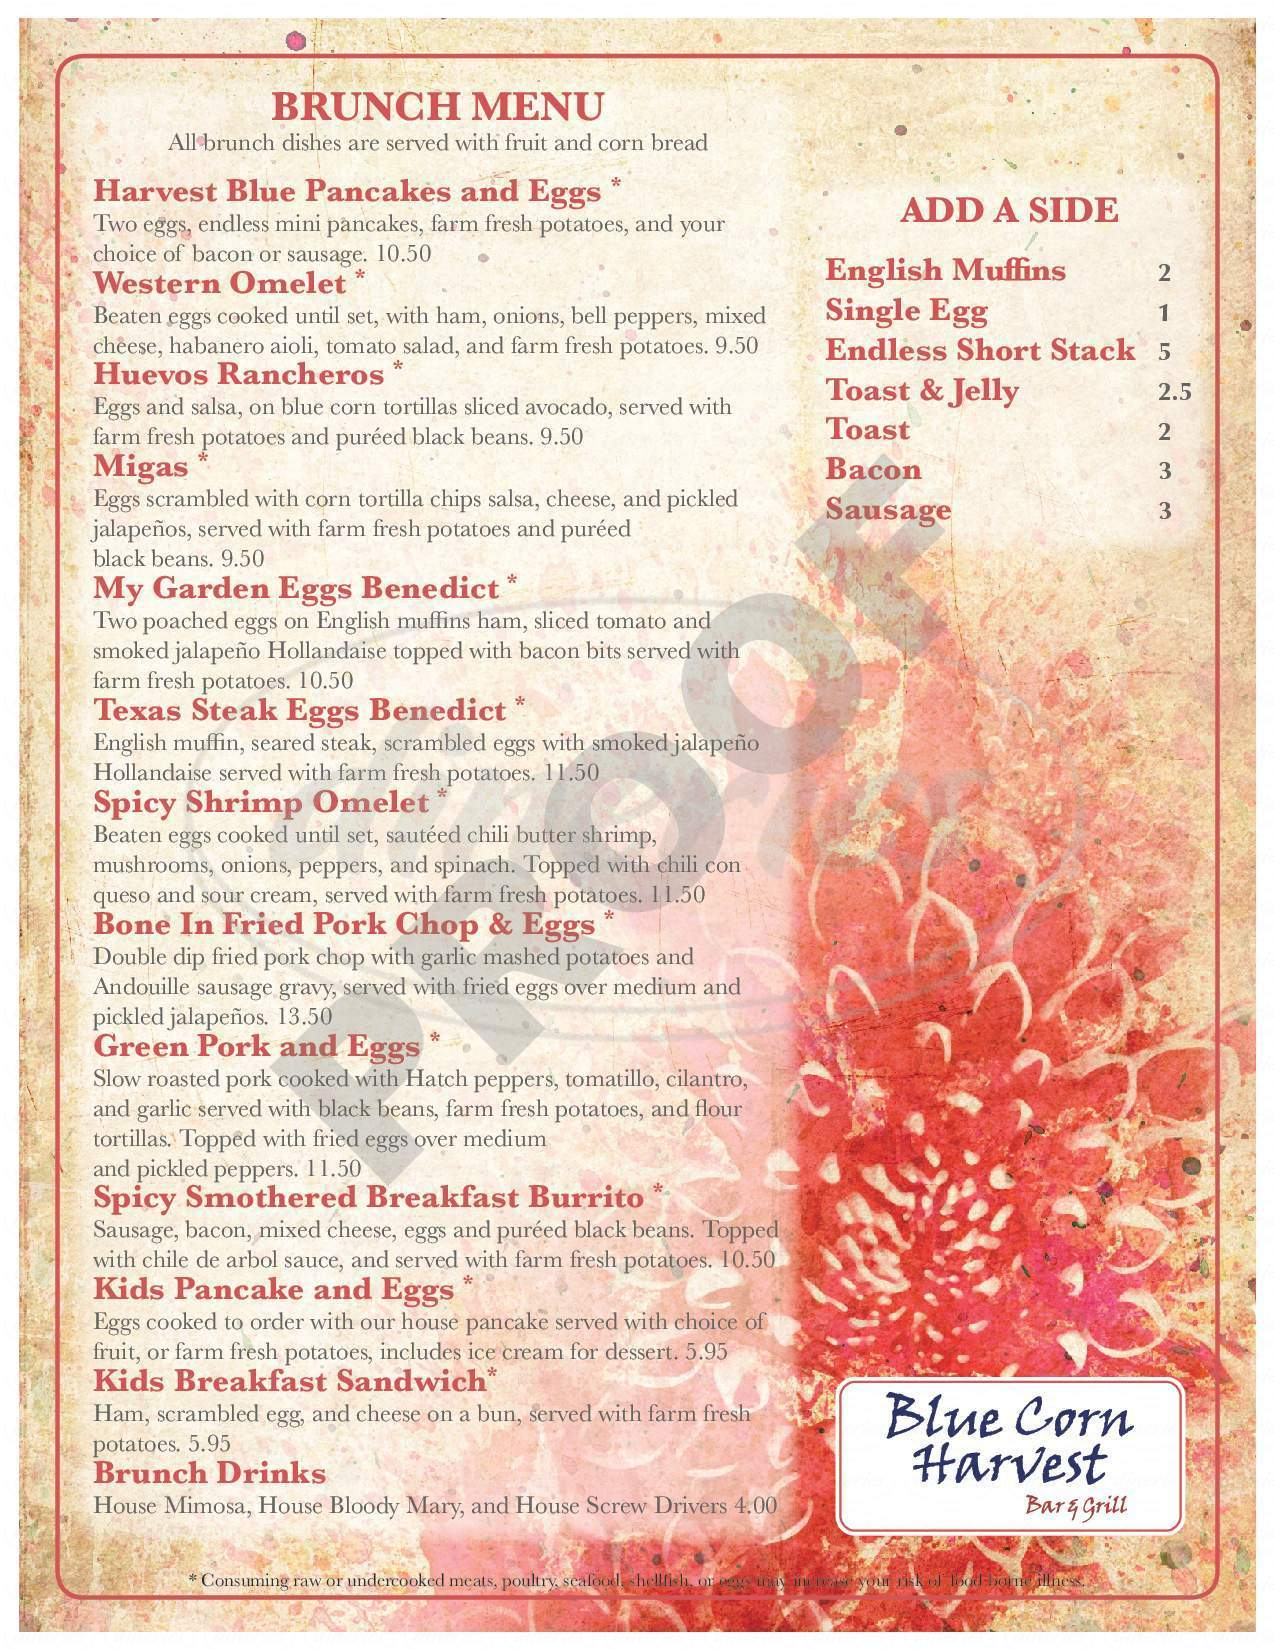 menu for Blue Corn Harvest Bar & Grill